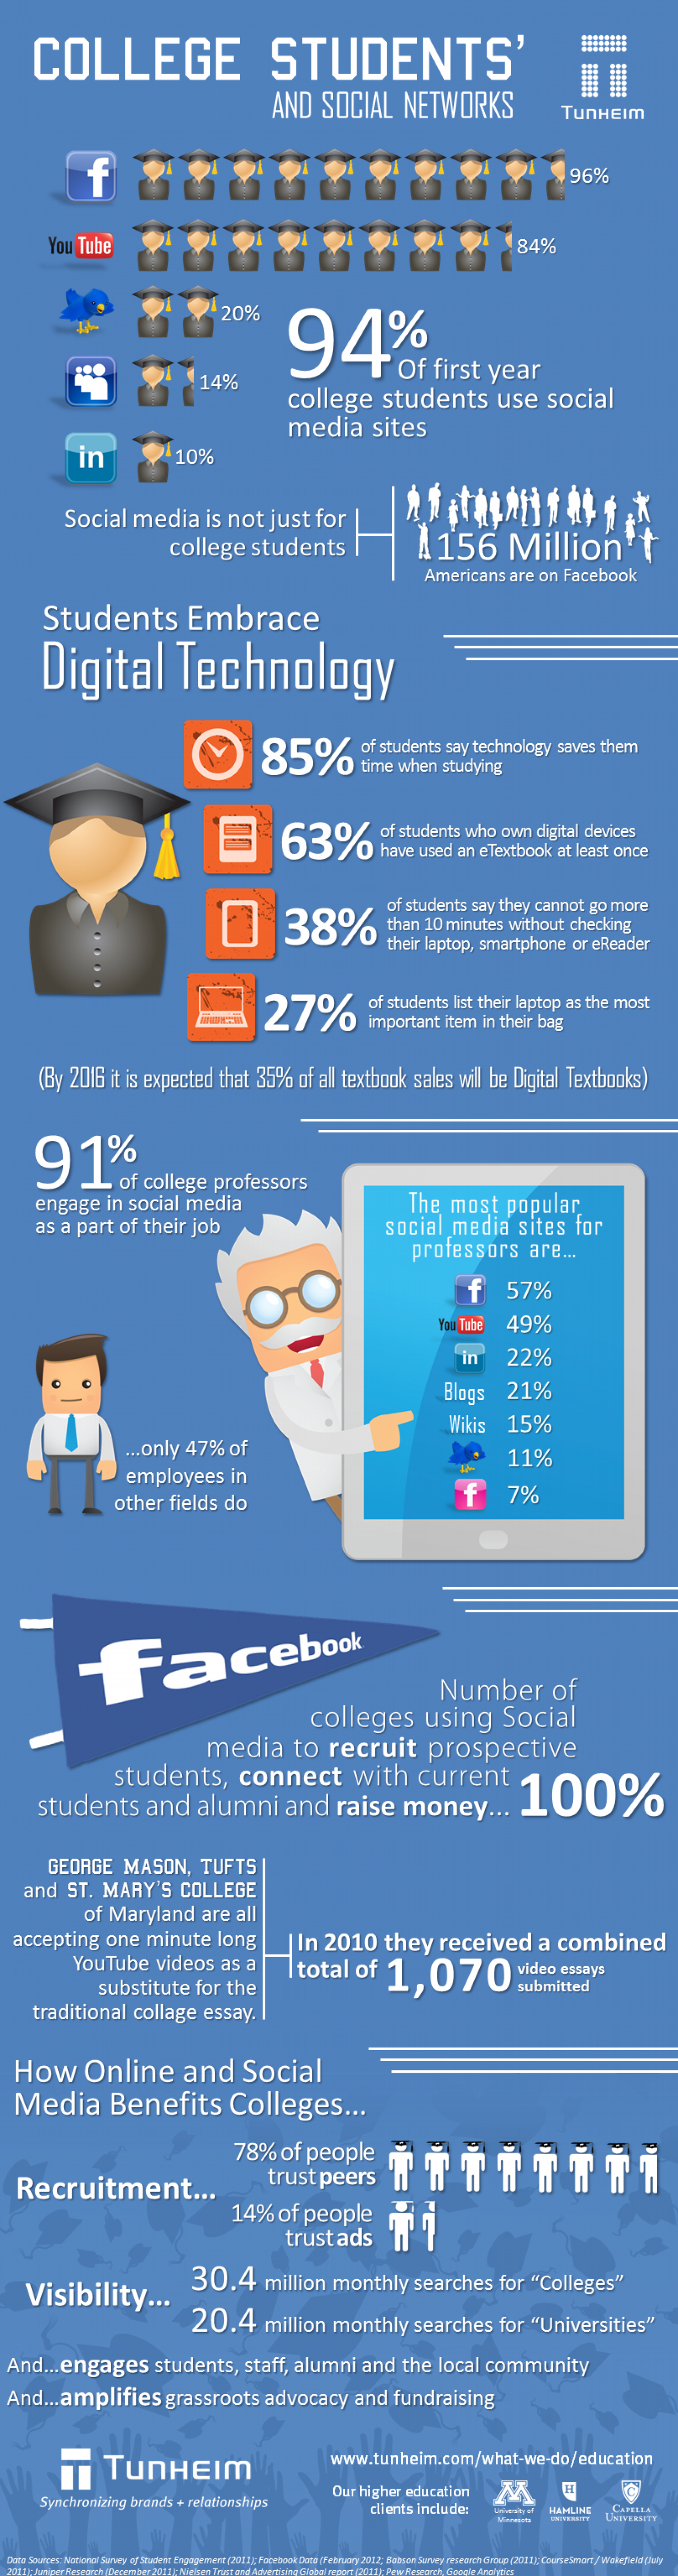 College Students & Social Networks Infographic